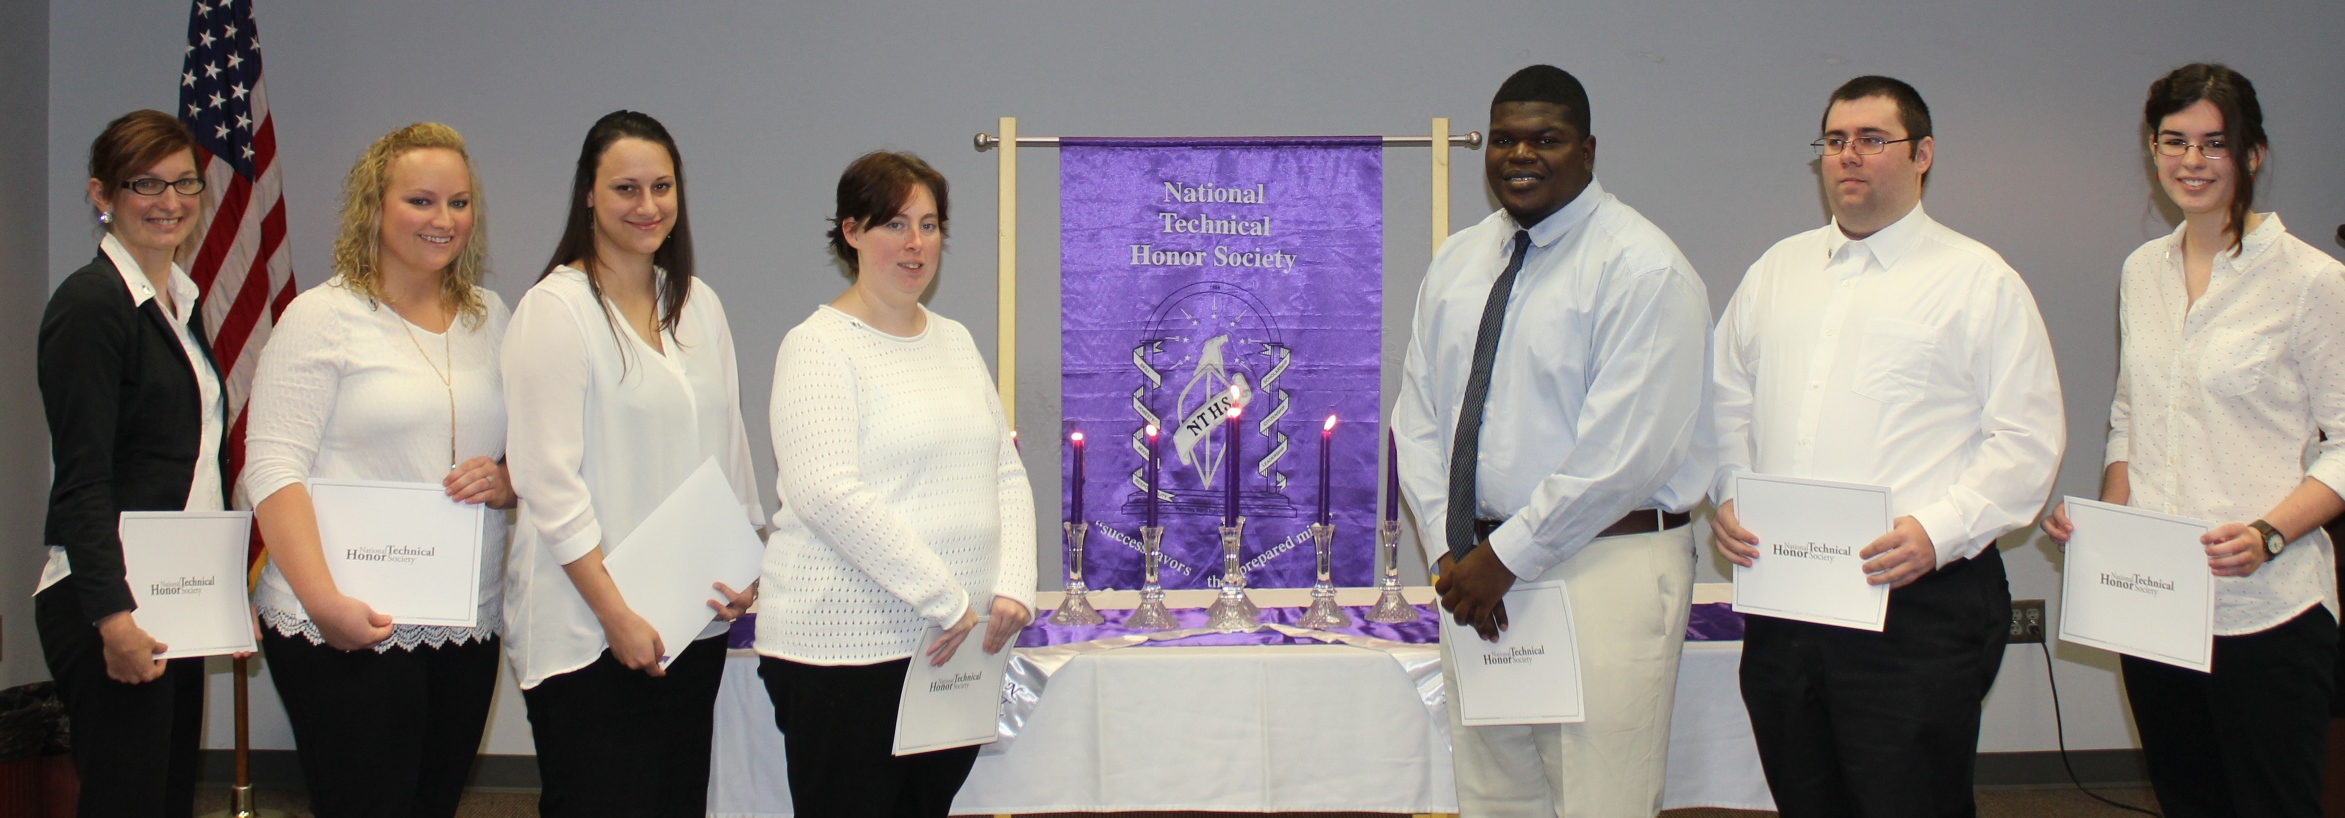 NTHS Induction - December 2015